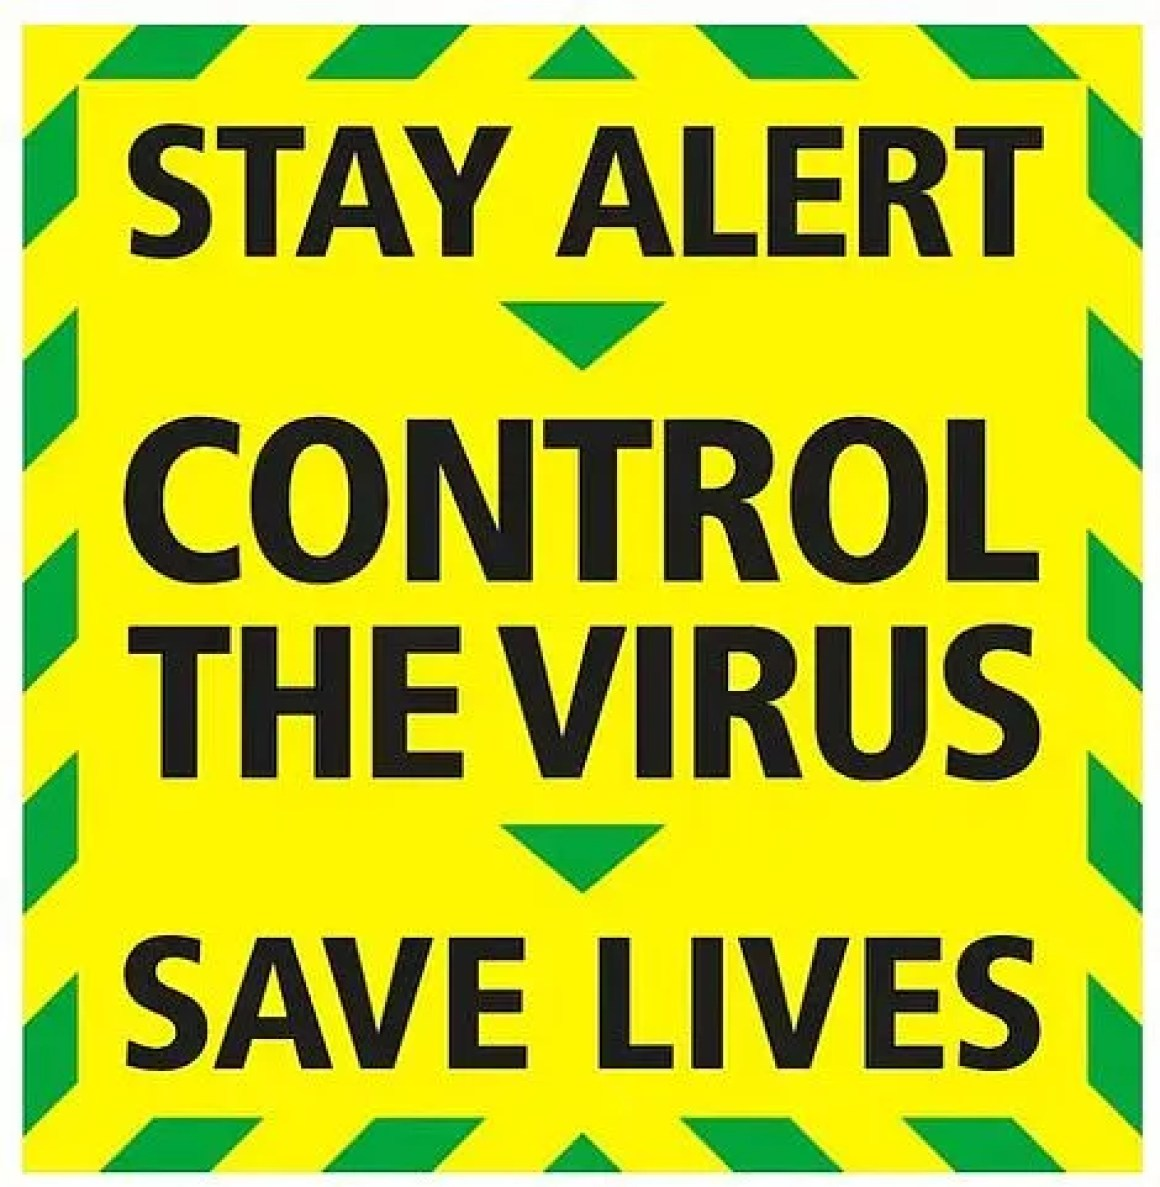 Stay alert-control the virus-save lives